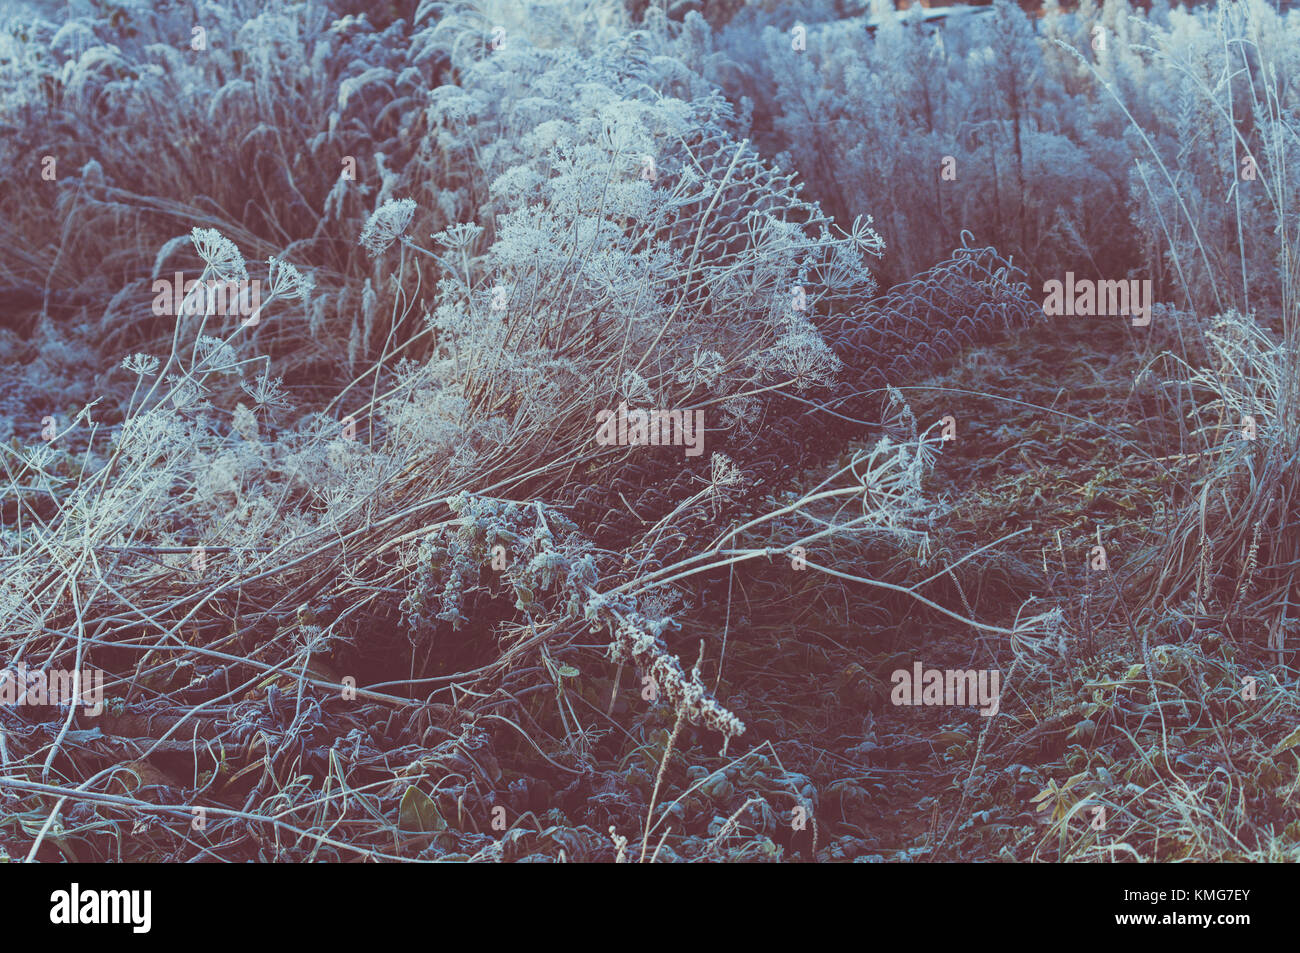 Old garden. Damaged fence. Cold hoarfrost. - Stock Image